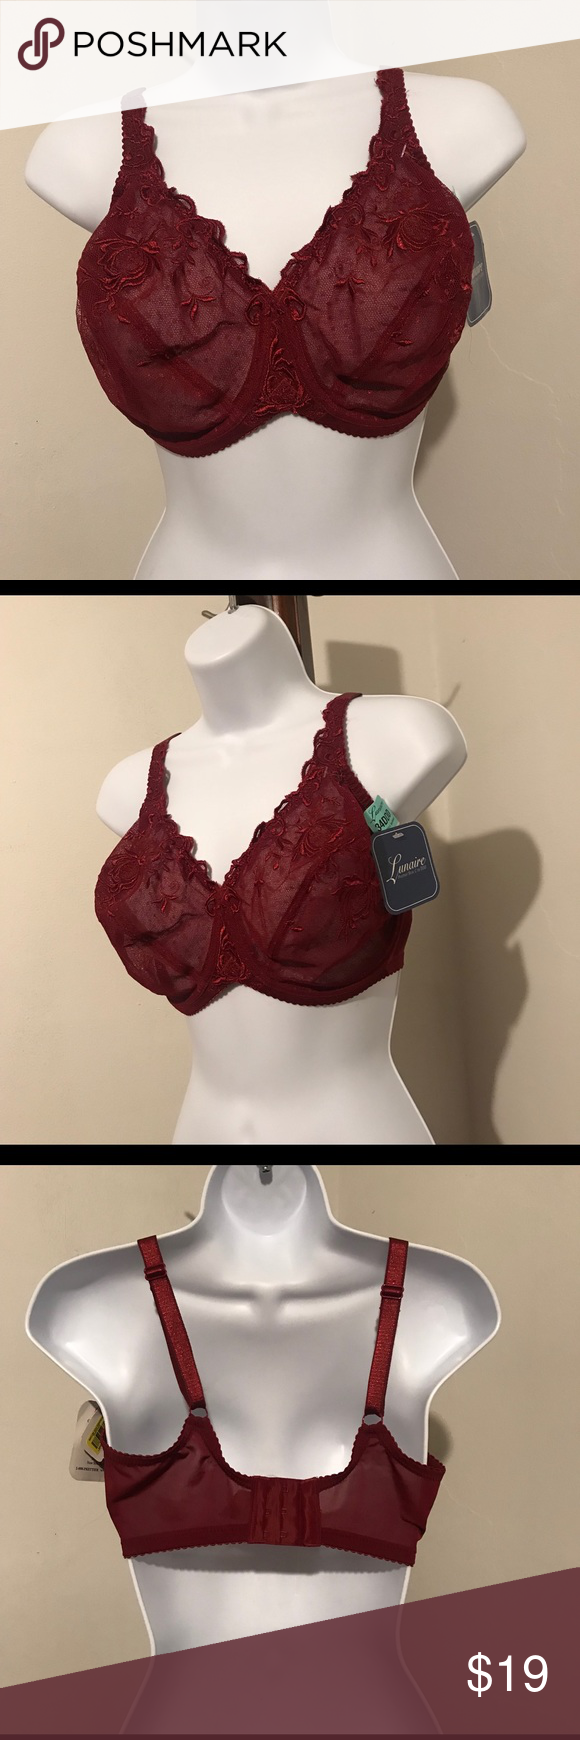 b77407a801a72 Lunaire prettier Bras NWT 34DDD ( see pictures more details) Color dark  maroon lunaire Intimates   Sleepwear Bras